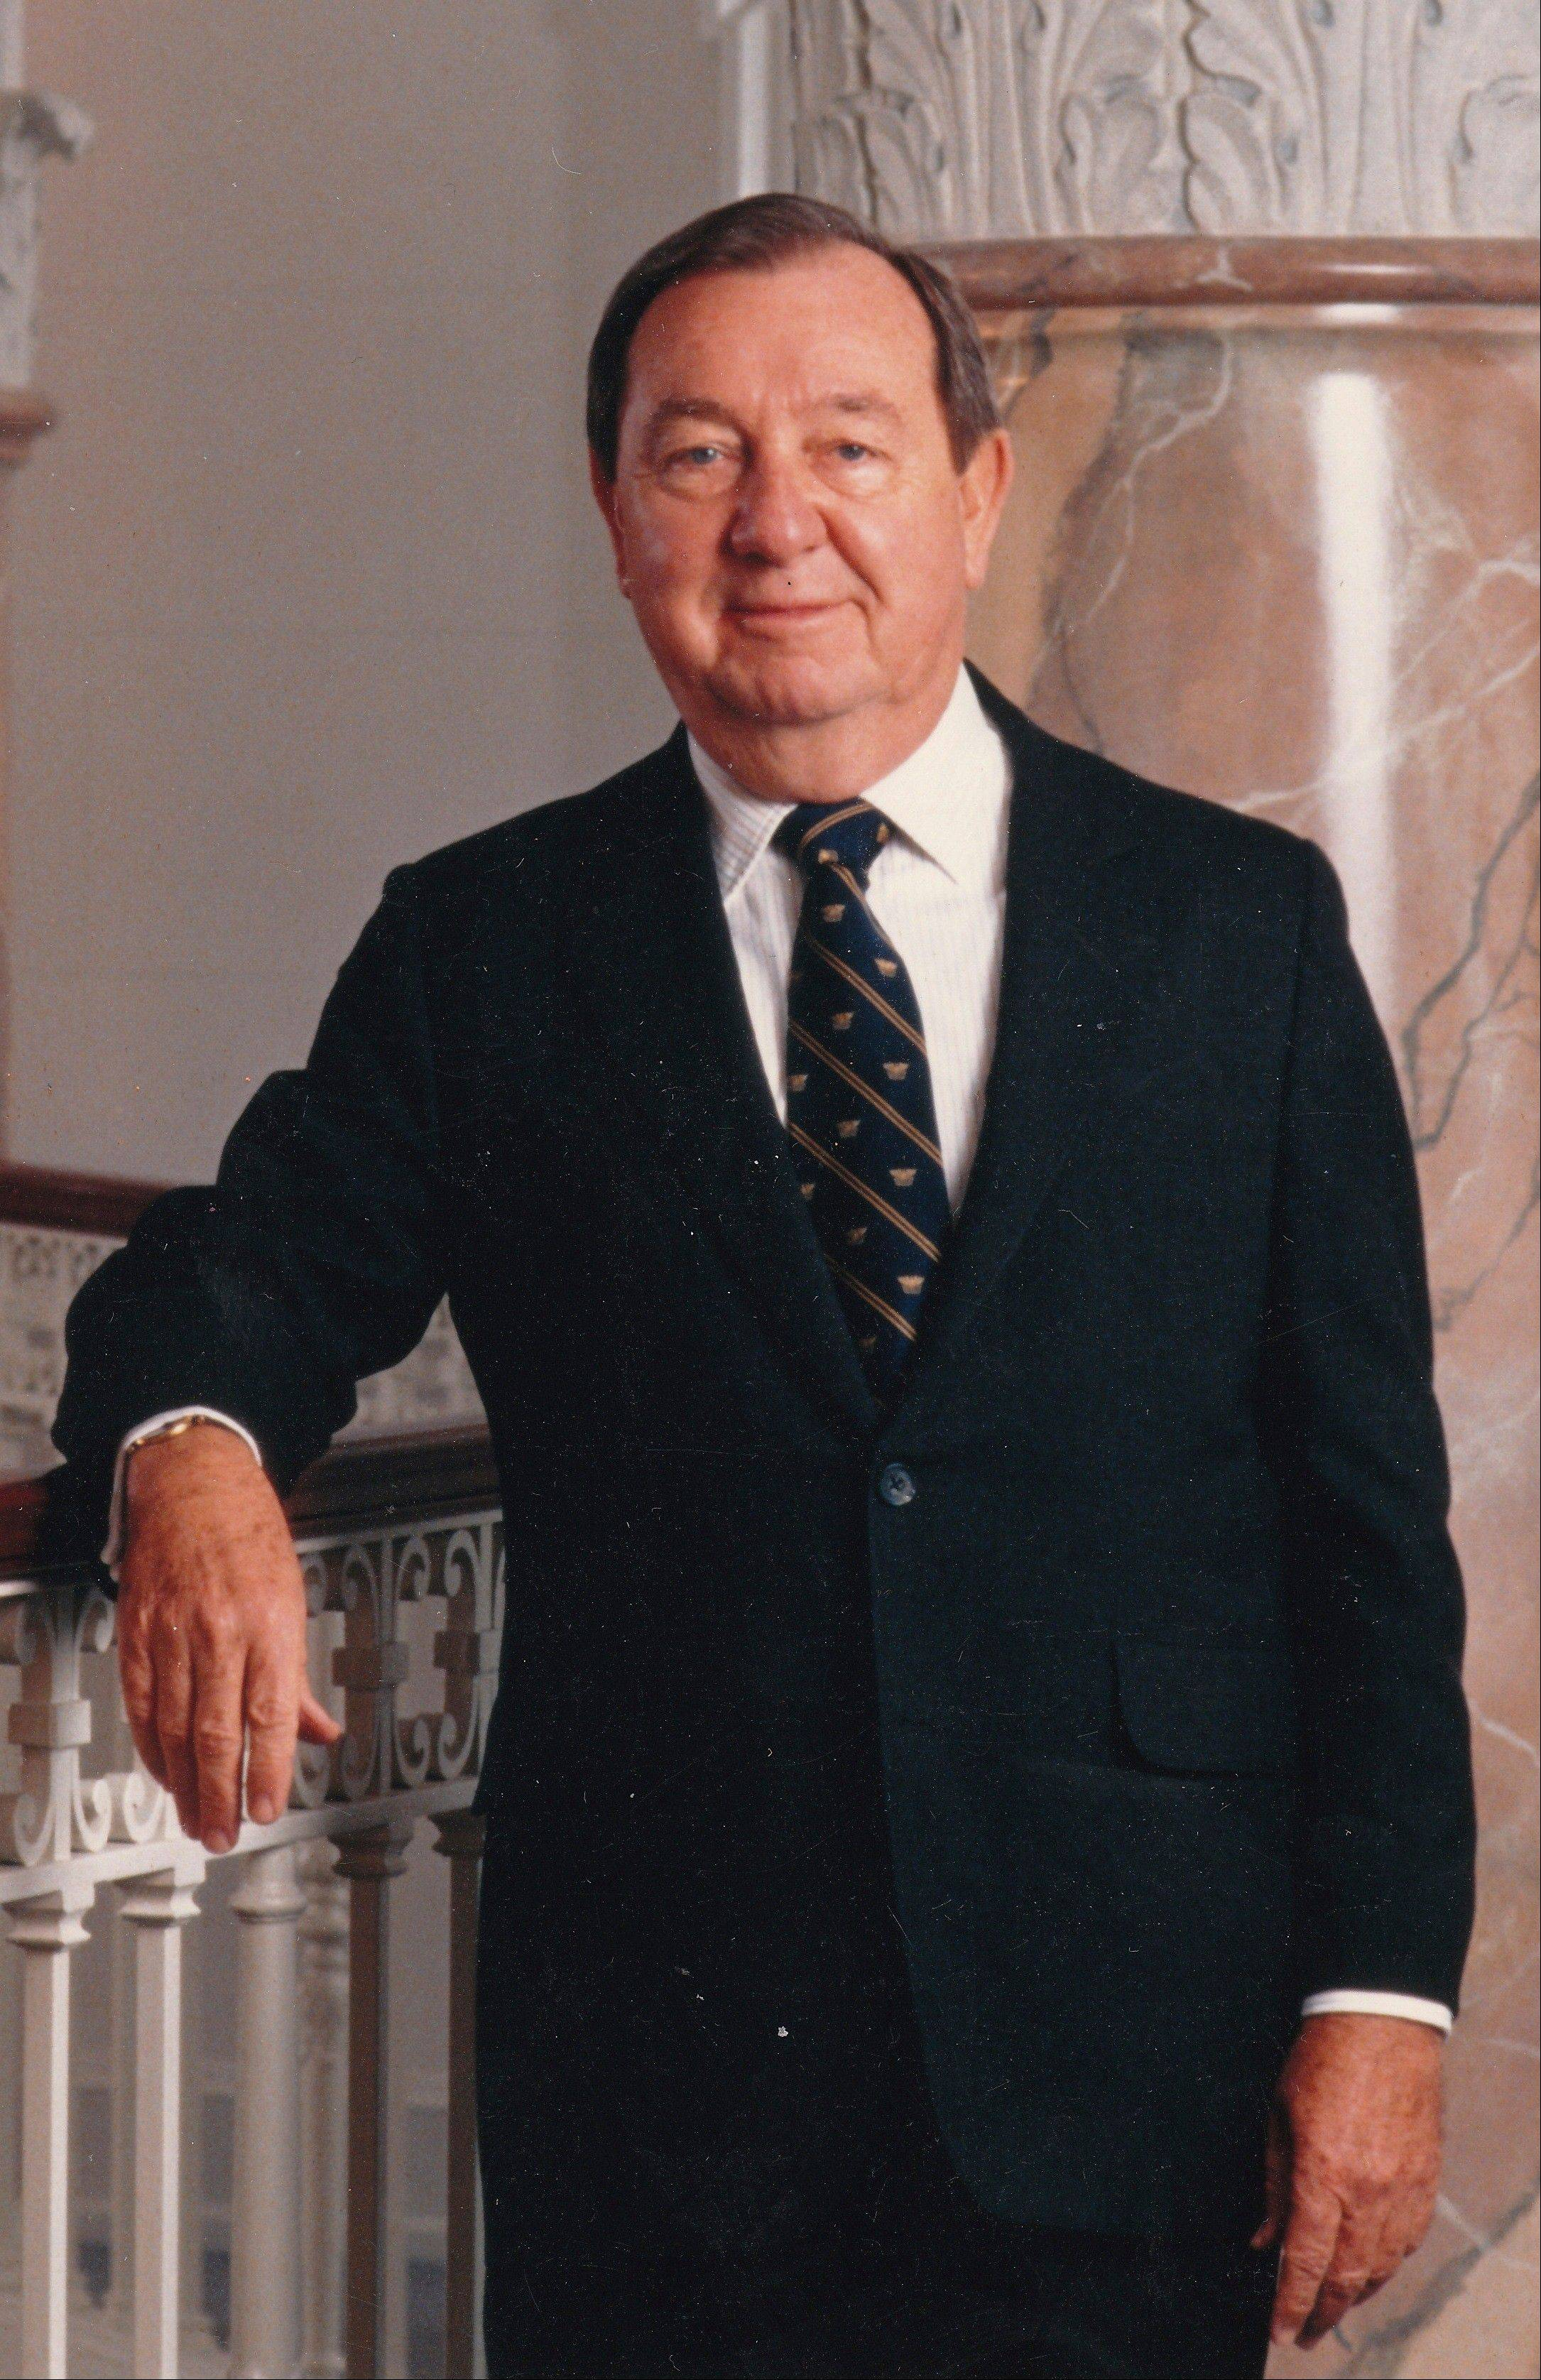 Joe Allbritton, founder of Allbrittion Communications who became one of Washington's most influential men by building media and banking empires, died at the age of 87, on Wednesday, Dec. 12, 2012, at a hospital in Houston, where he lived.